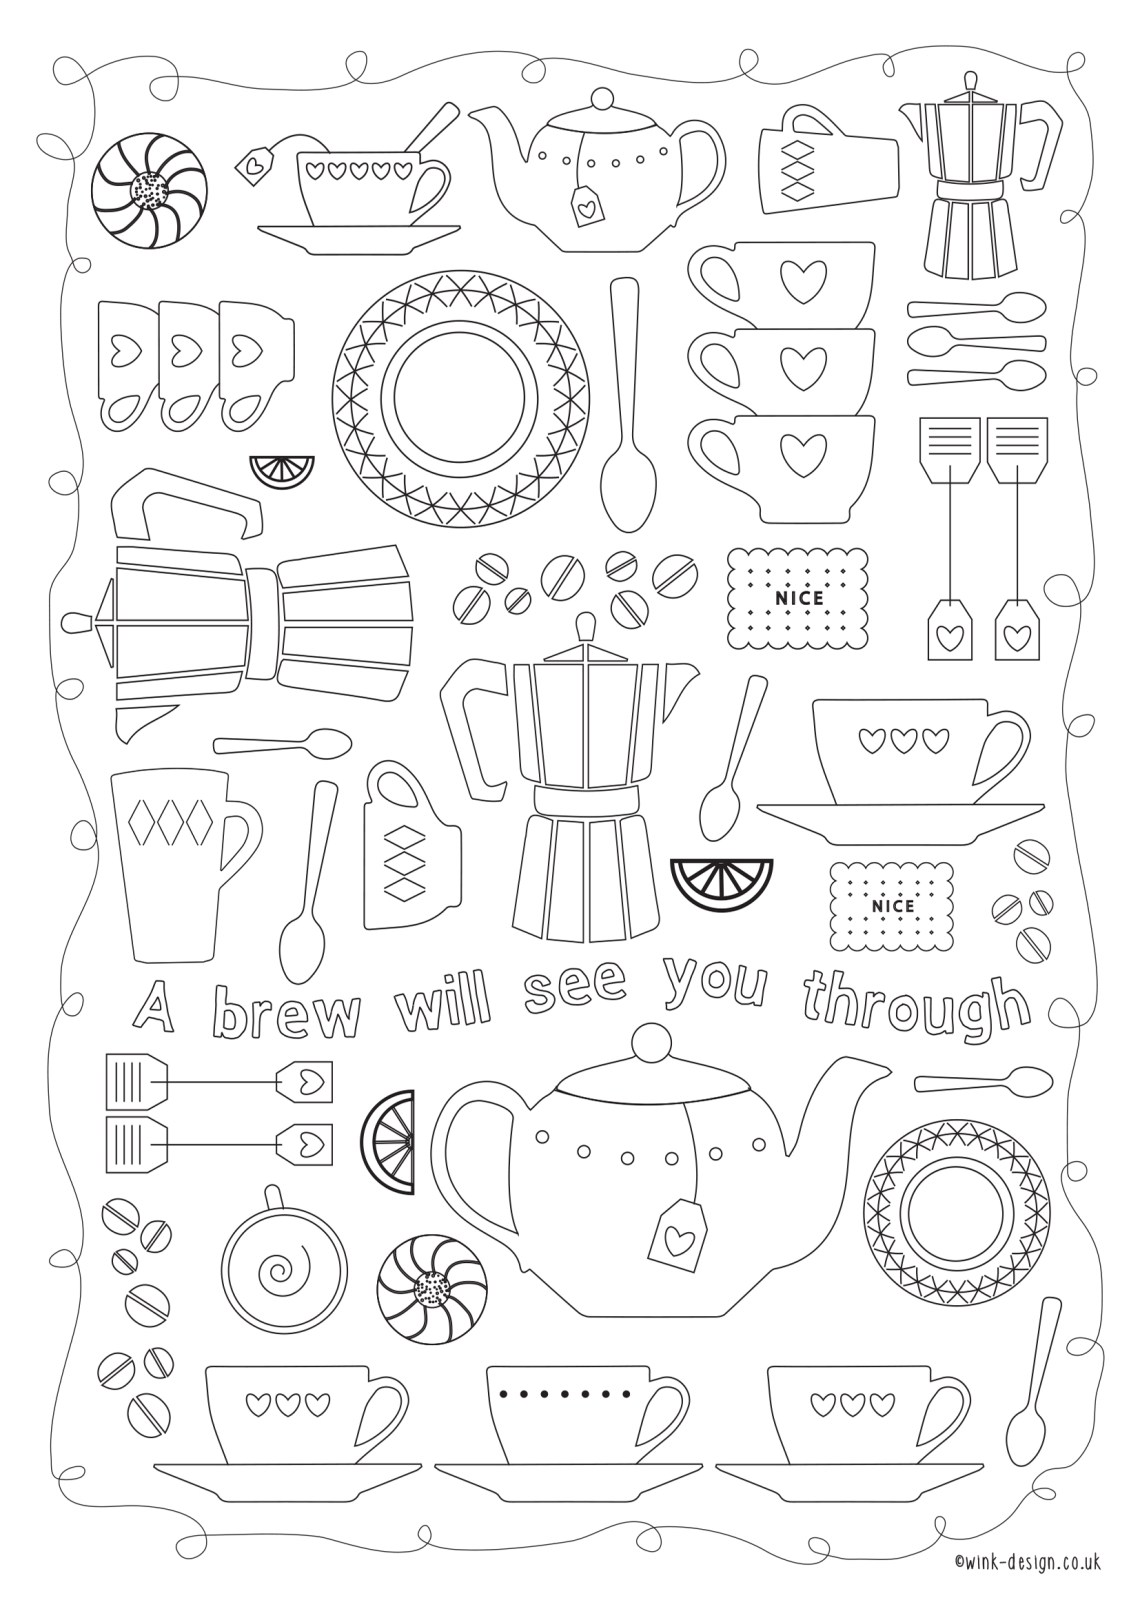 Free printable adult colouring pages for the New Year ... | free printable colouring pages quotes